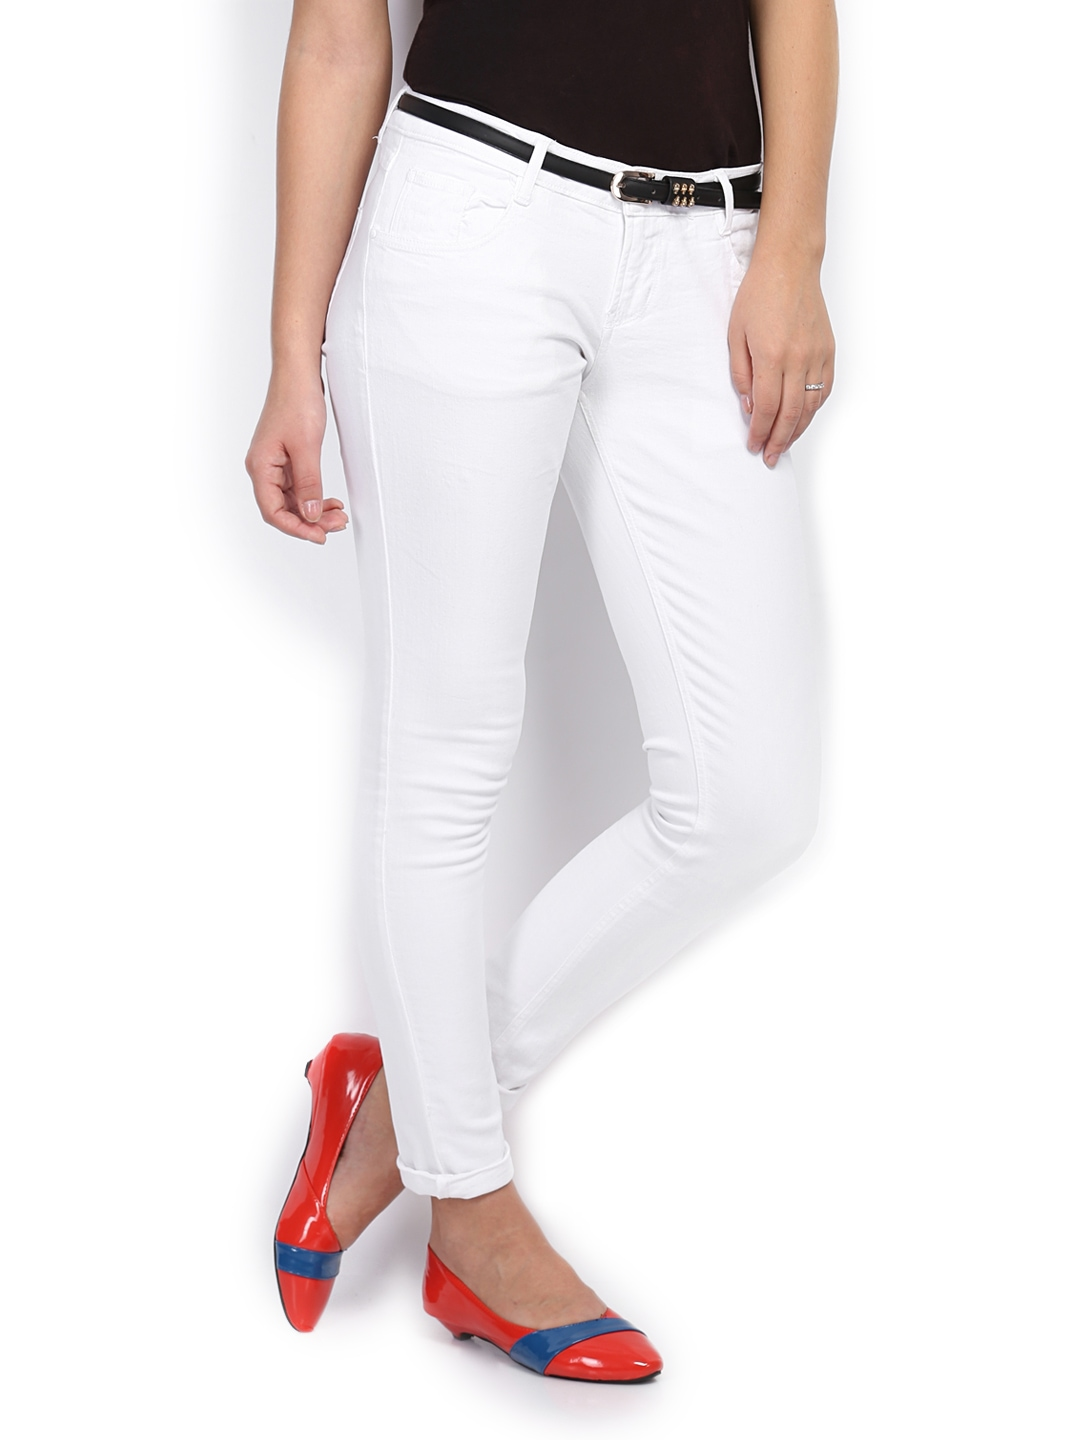 Buy People Women White Jeans 2845519 for women online in india on ...